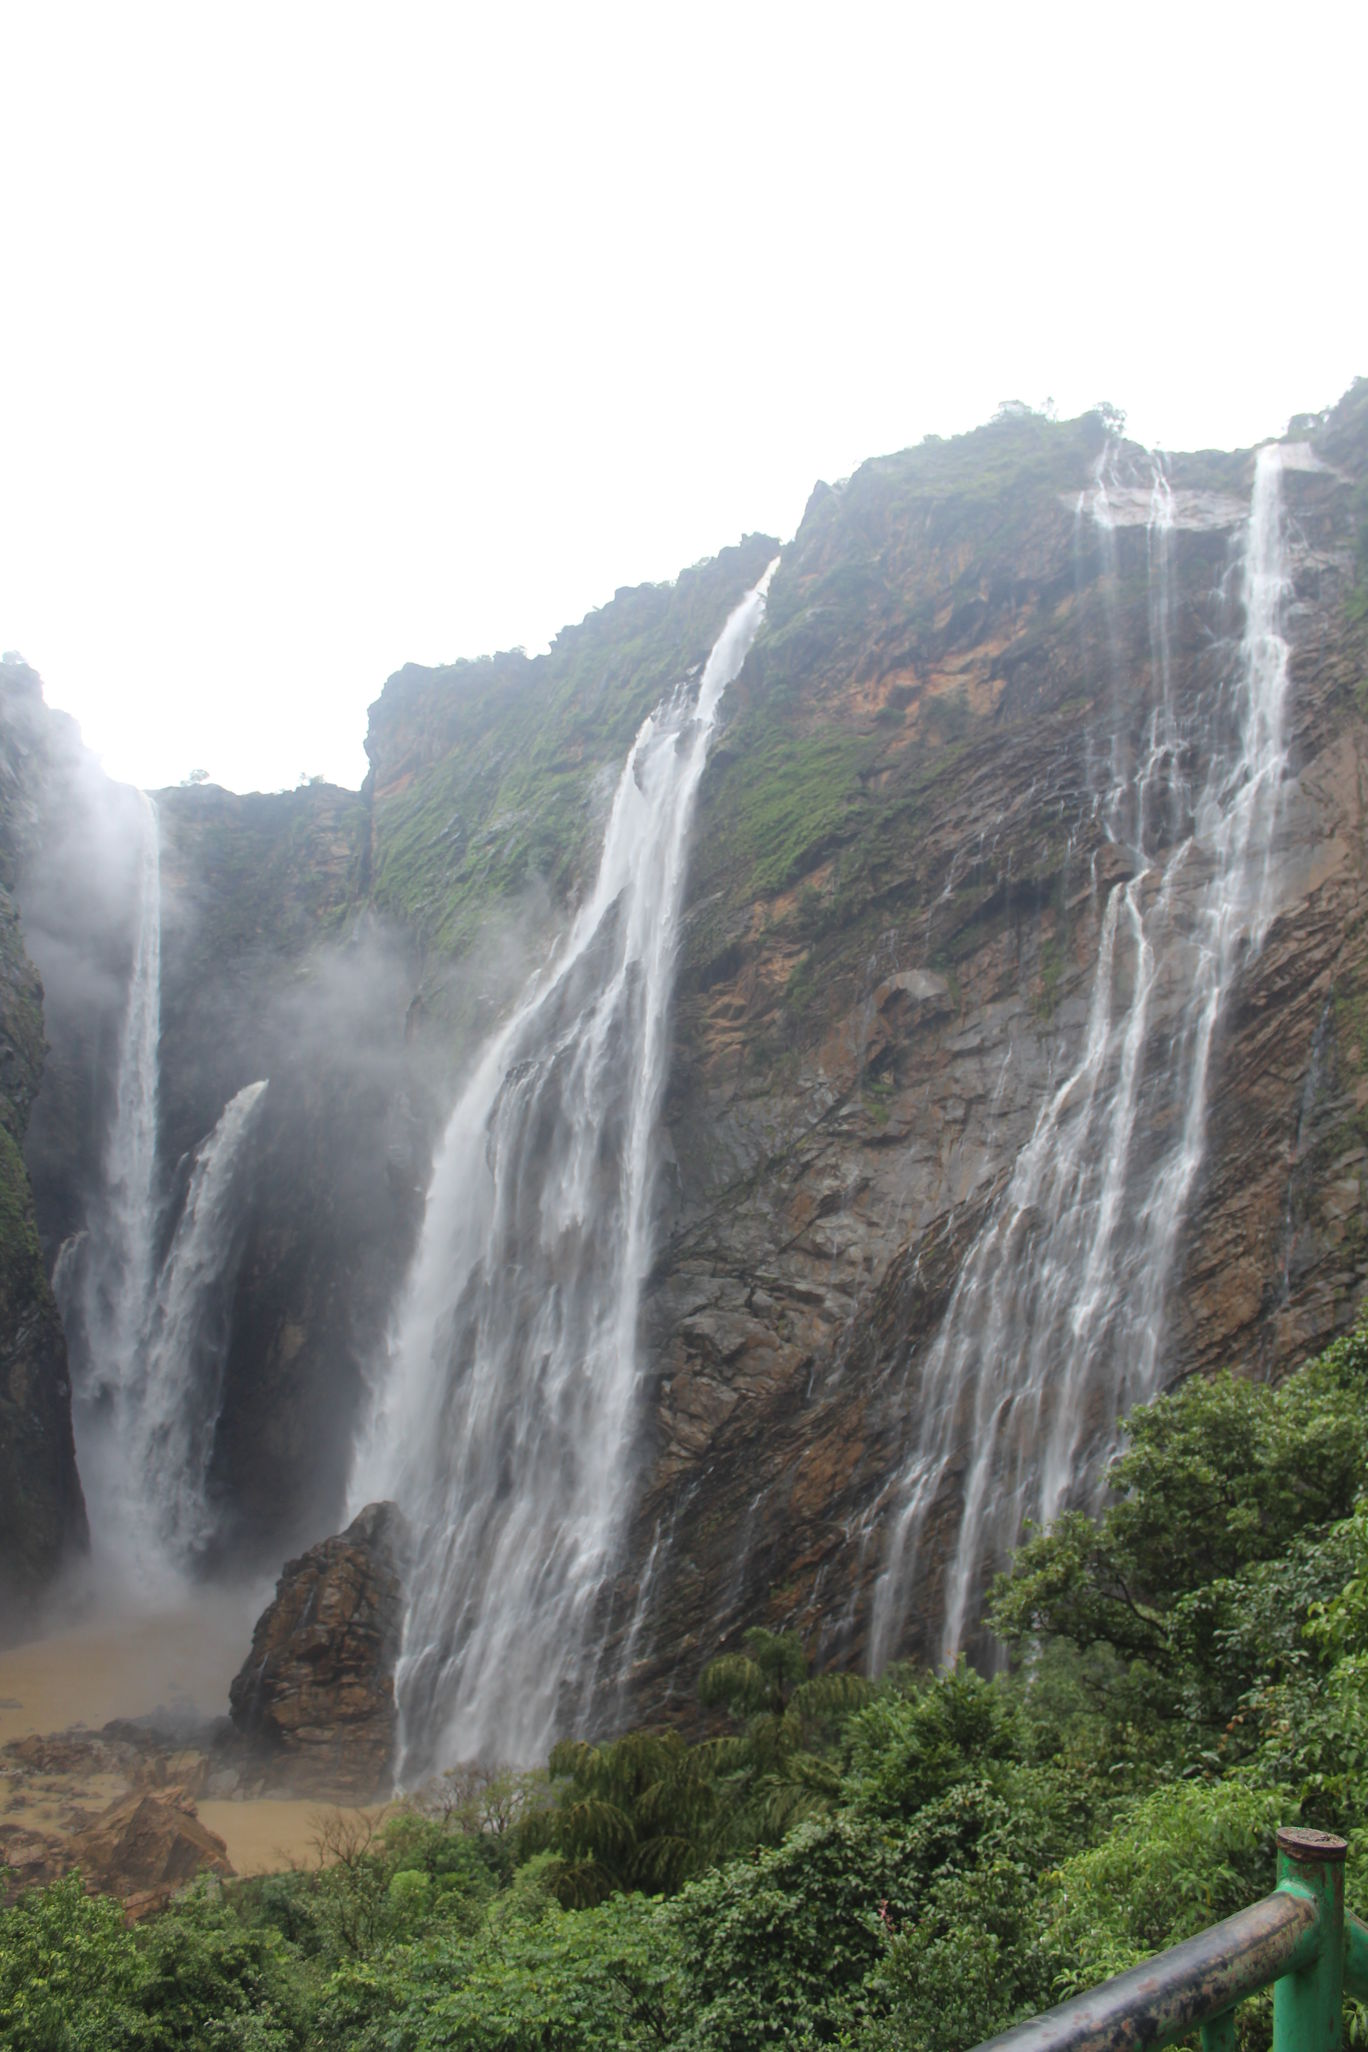 Photo of Jog Falls By Muhsin Muneer